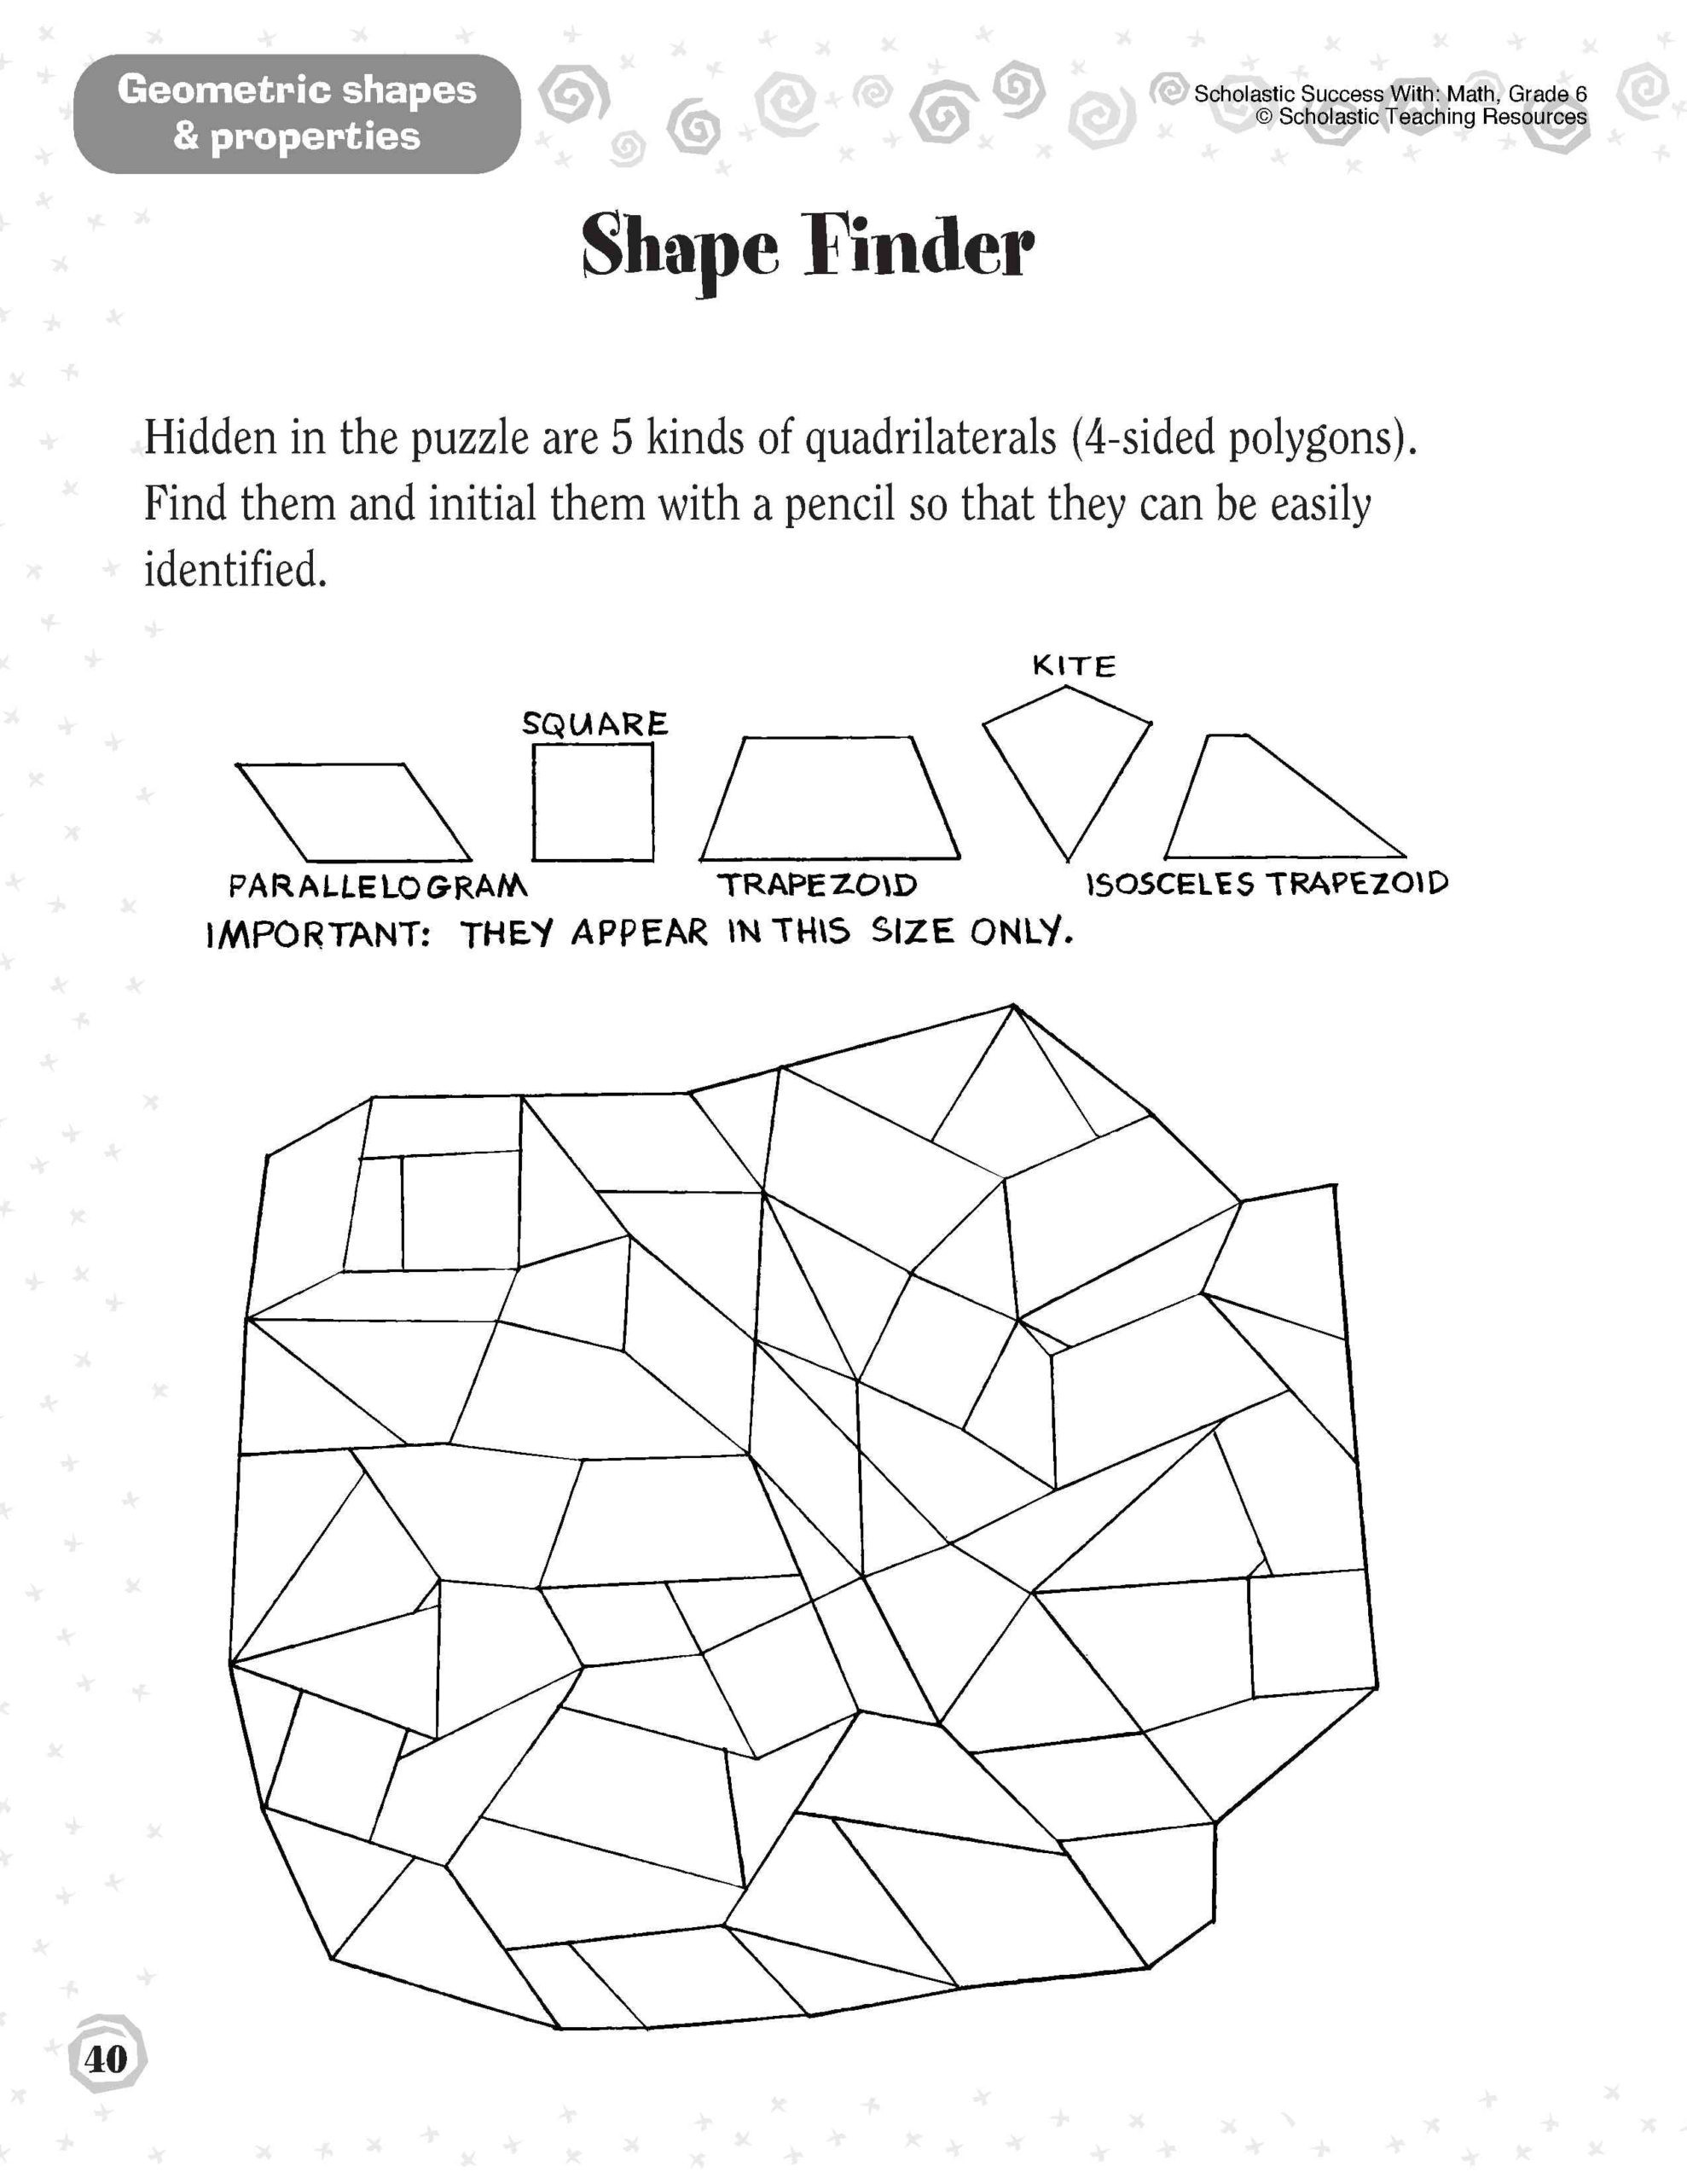 3d Shapes Worksheets 2nd Grade Printable Sheets Silent Reading Prehension Worksheets